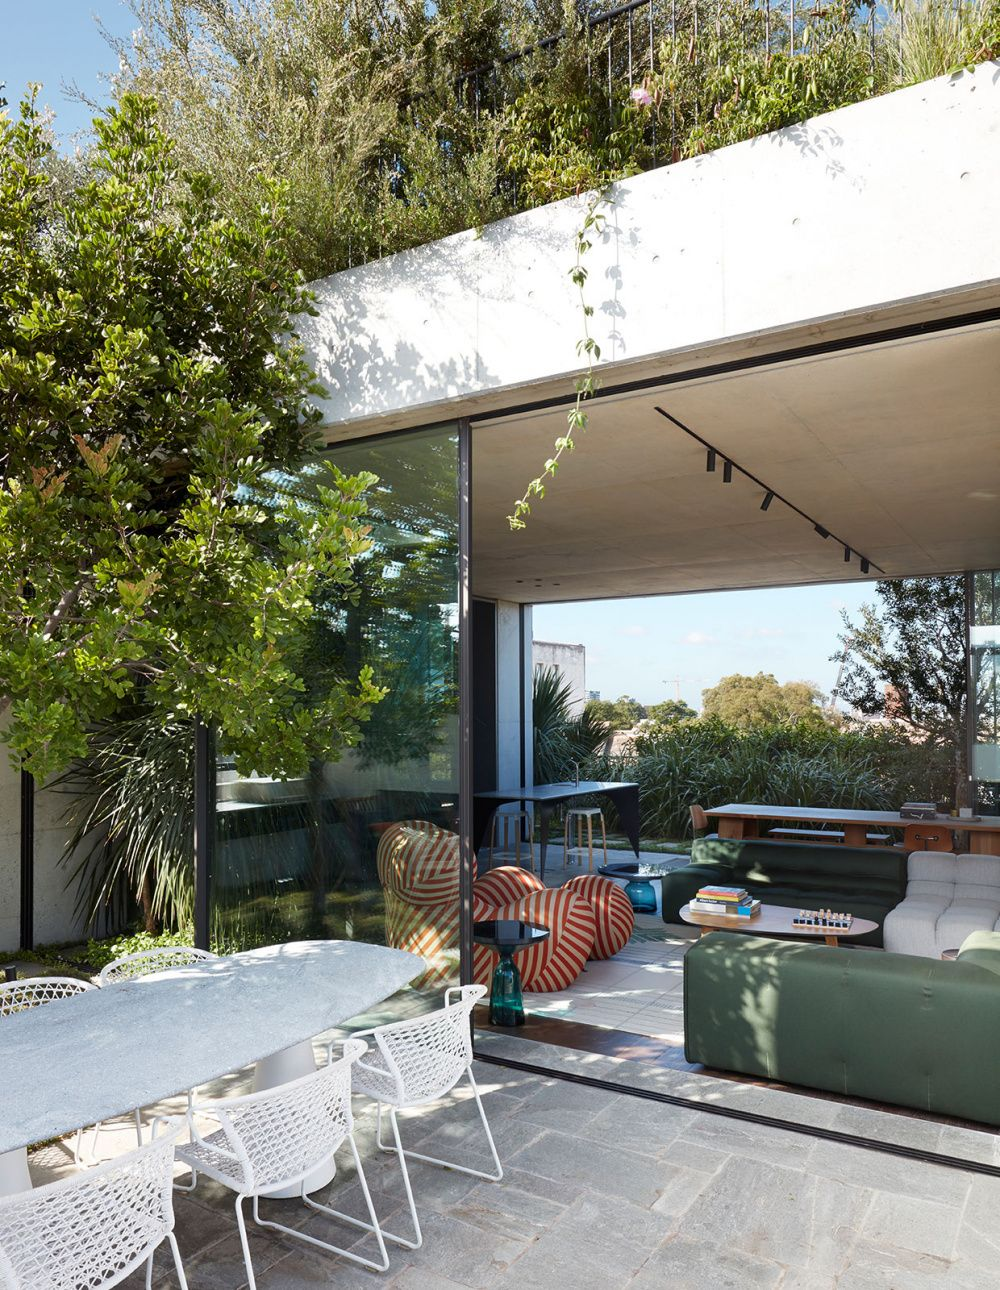 A Factory Rooftop Turned Lush Penthouse Garden is part of Rooftop design, Penthouse garden, Backyard, Rooftop garden, Garden design, Rooftop - SJB director Adam Haddow's apartment opens to a stunning rooftop garden designed by William Dangar of Dangar Barin Smith